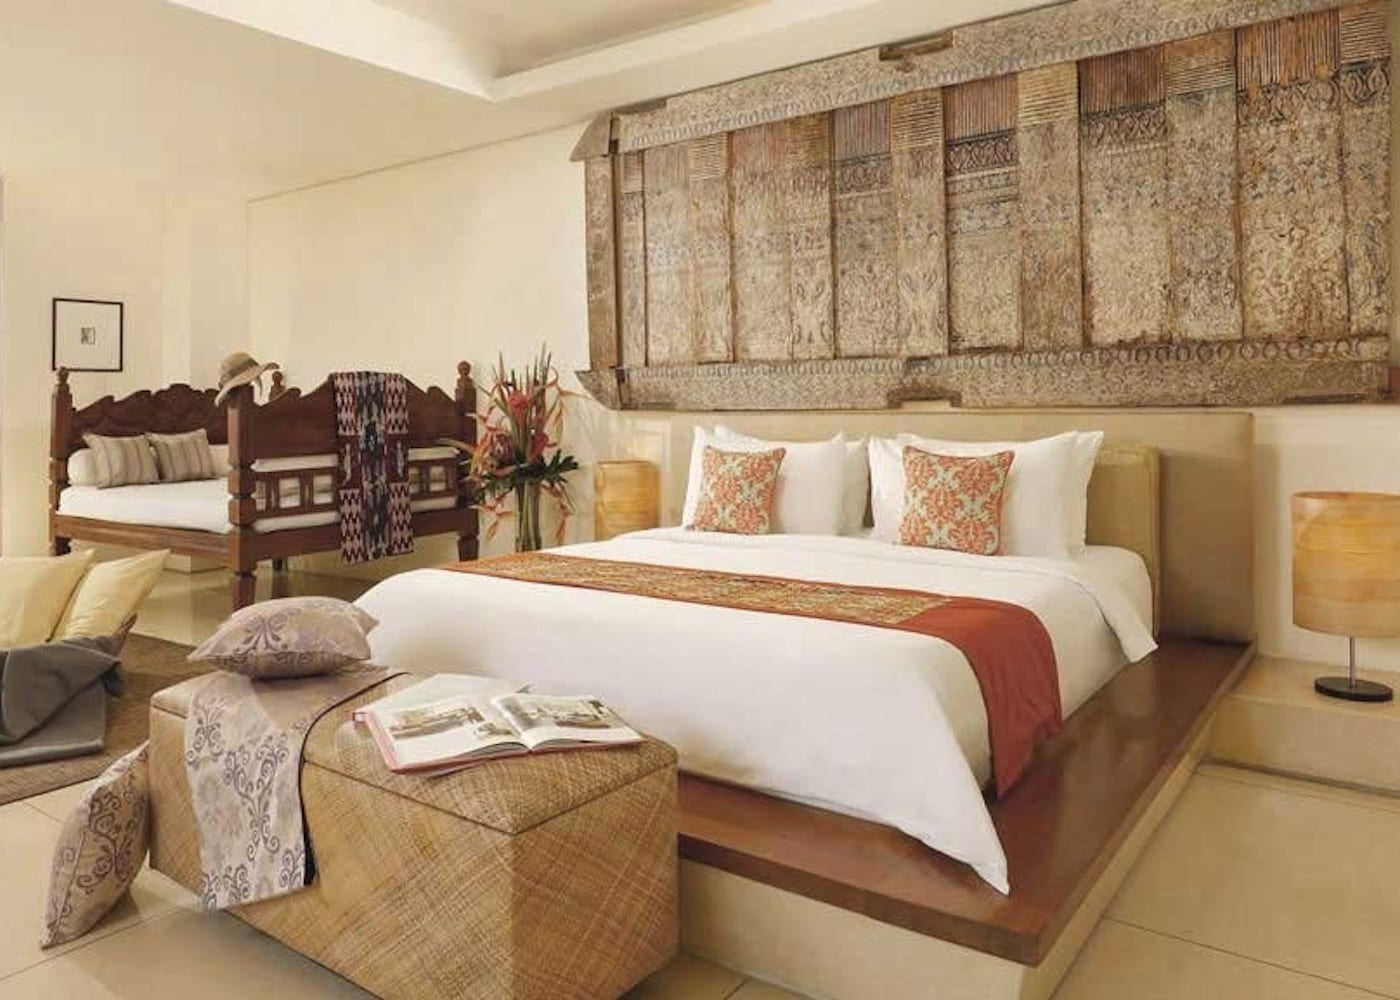 IndoLinen - where to buy bedding, sheets and pillows in Bali, Indonesia